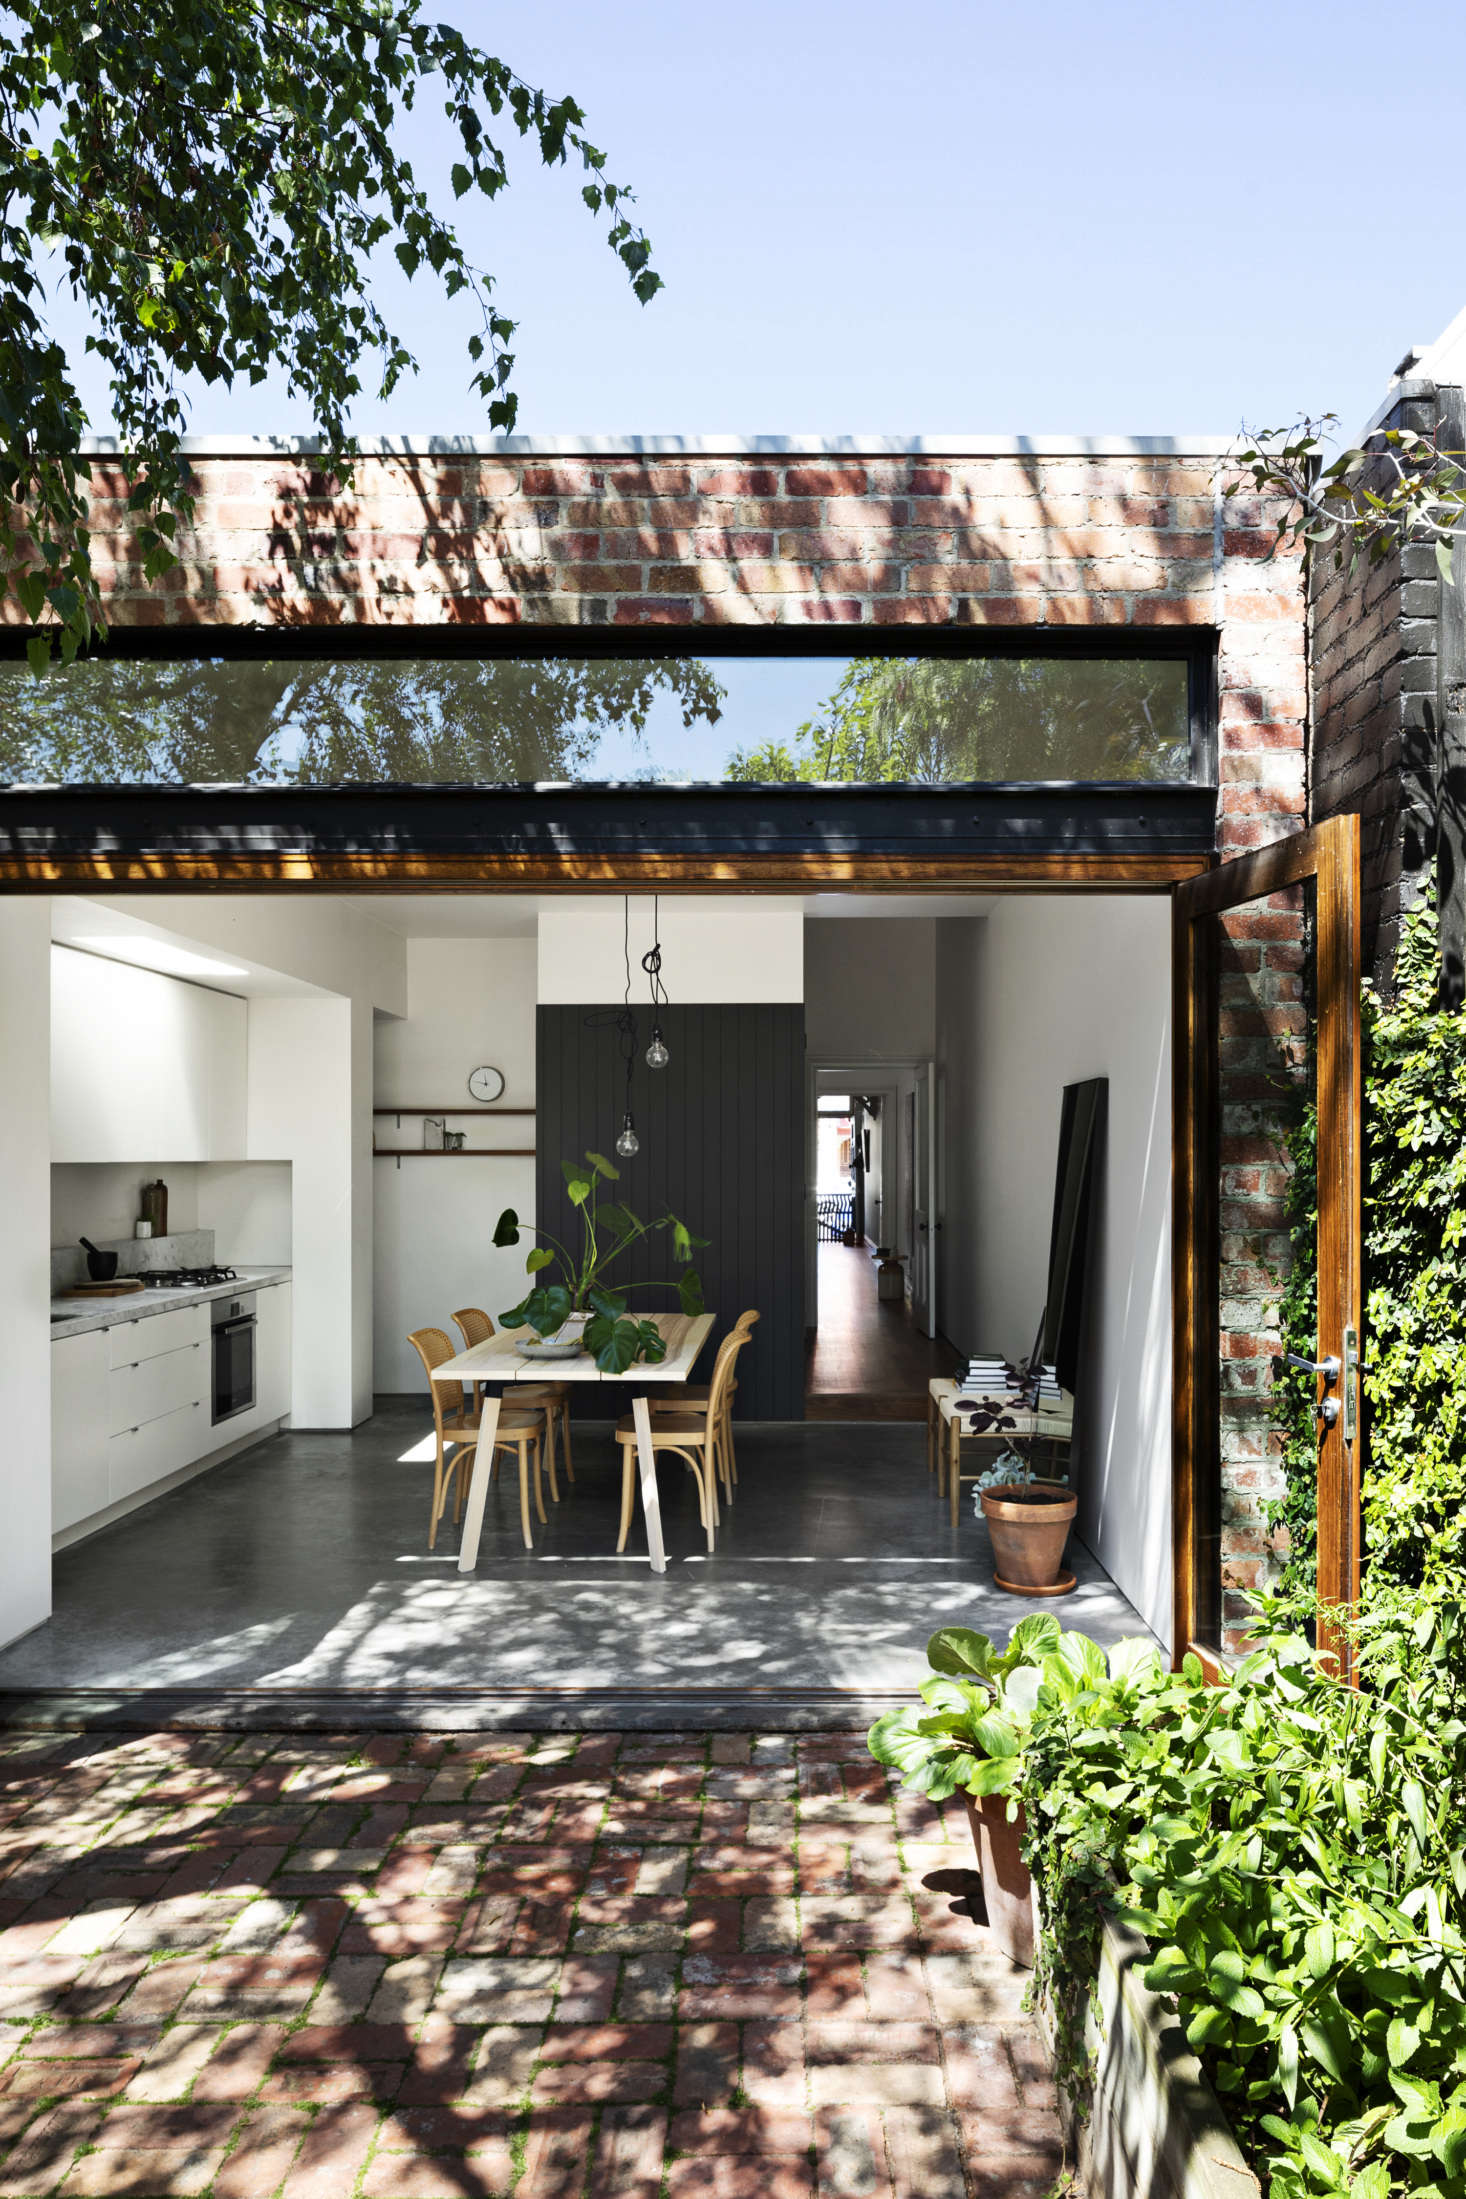 The center of the house is a bright kitchen and dining area with custom bifold doors and a transom window that fully connects indoors to out. The shotgun hallway was created by flipping the position of the original hall. The charcoal paneled partition hides the fridge and laundry.